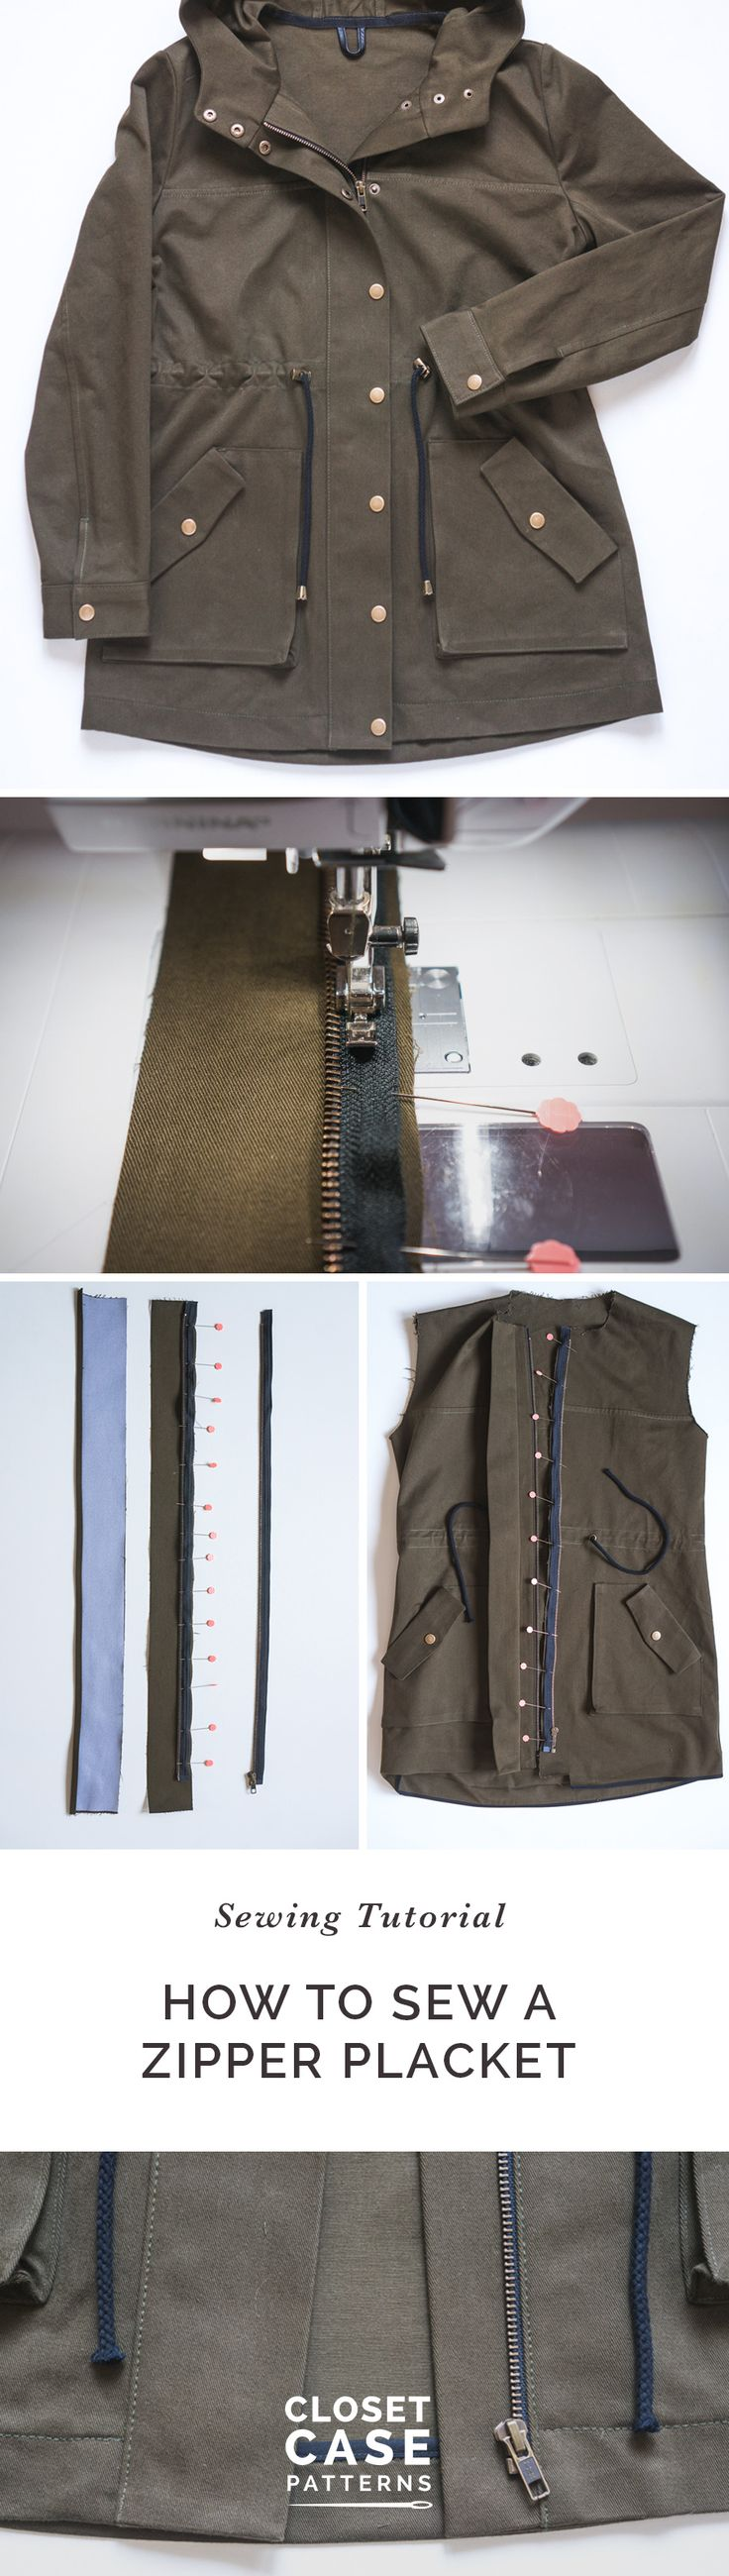 Learn how to sew a zipper placket with our in-depth step by step sewing tutorial! // Kelly Anorak Sewalong // Closet Case Patterns https://closetcasepatterns.com/sewalong/sewing-zipper-placket-kelly-anorak-sewalong/